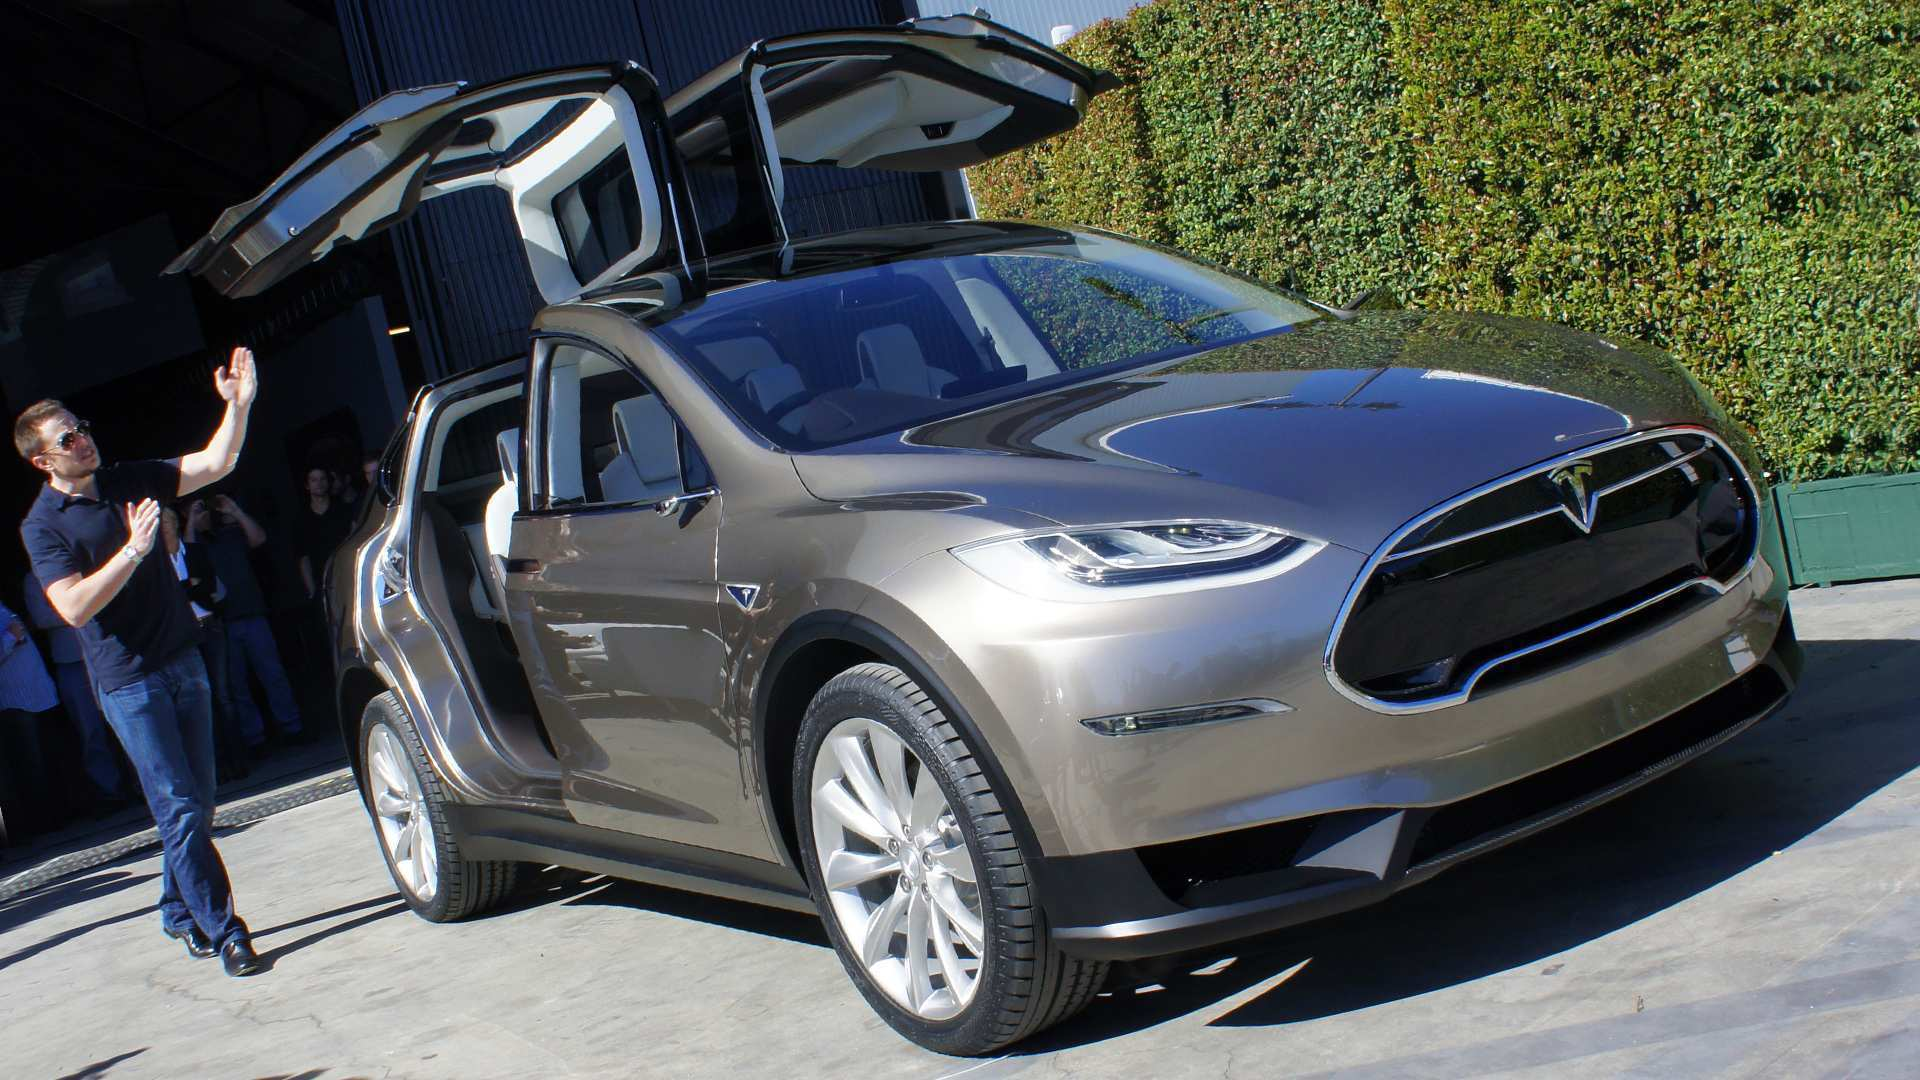 94 New 2019 Tesla X Price Images for 2019 Tesla X Price